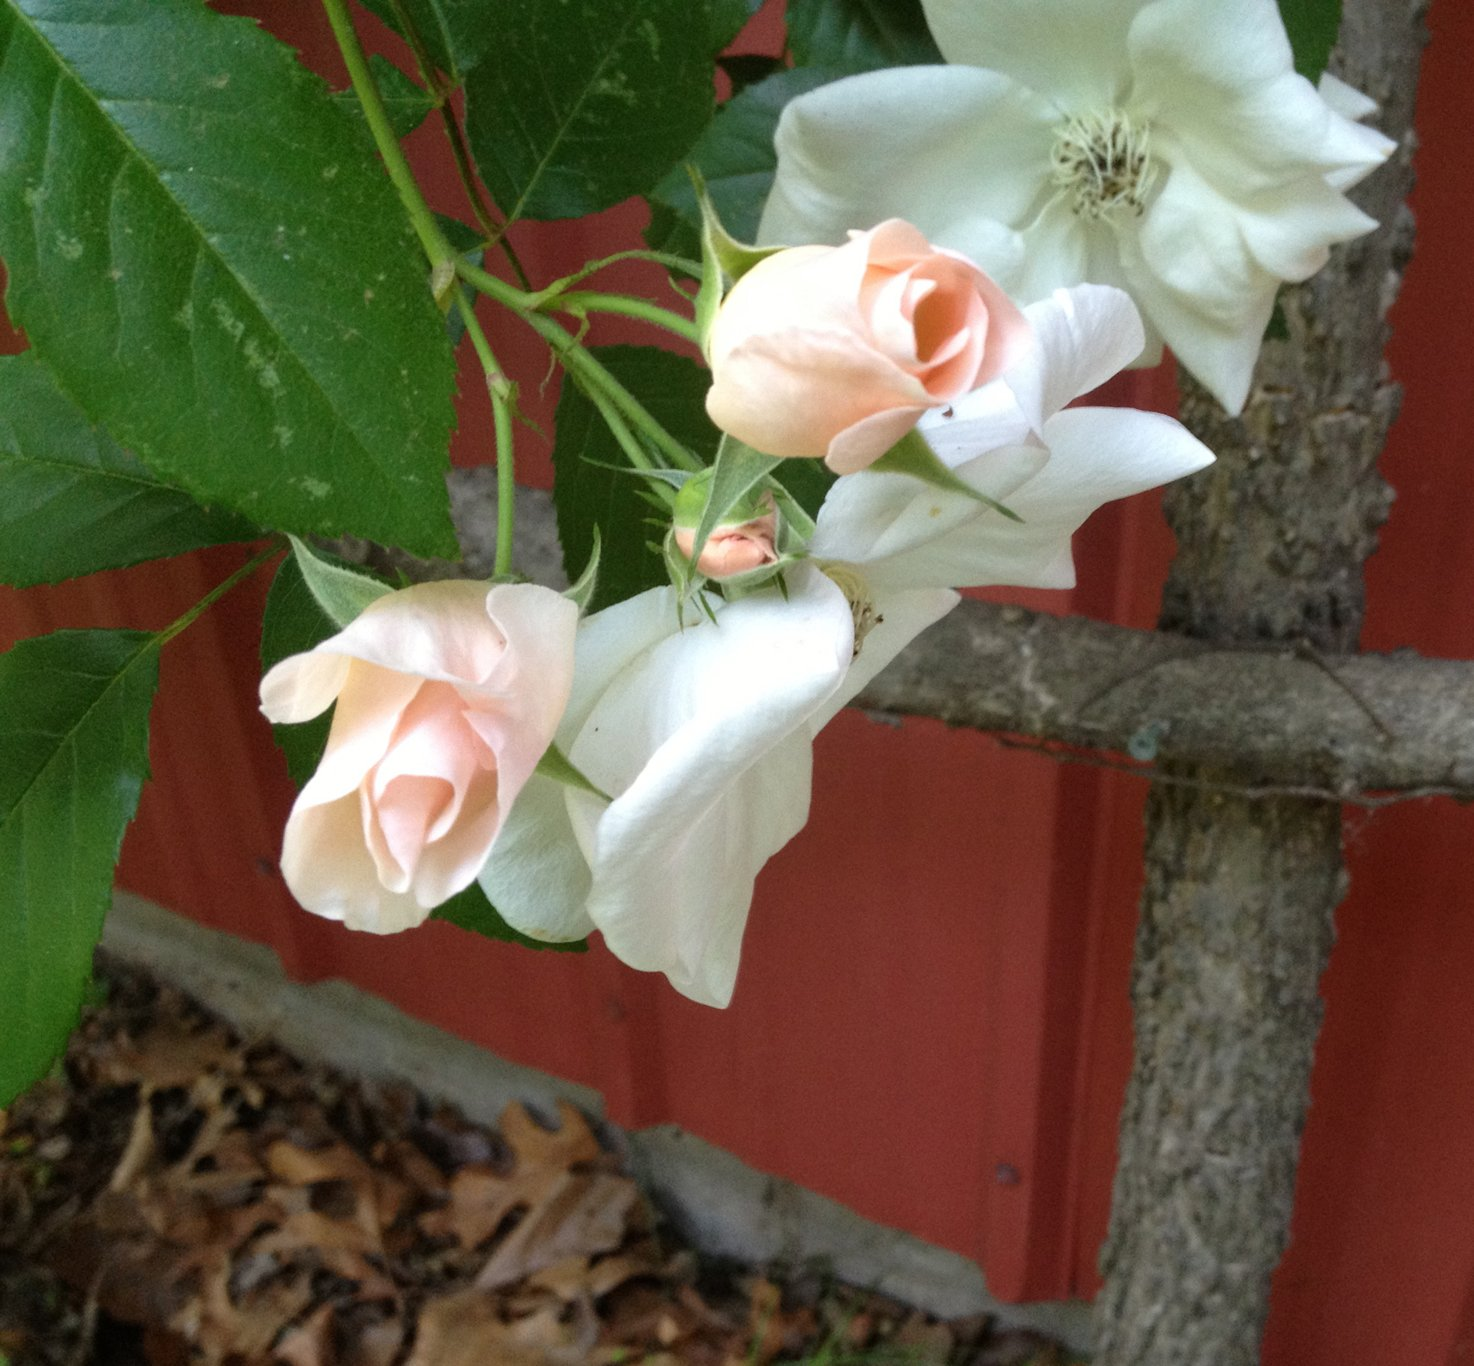 Roses growing on trellis made from chopped wood